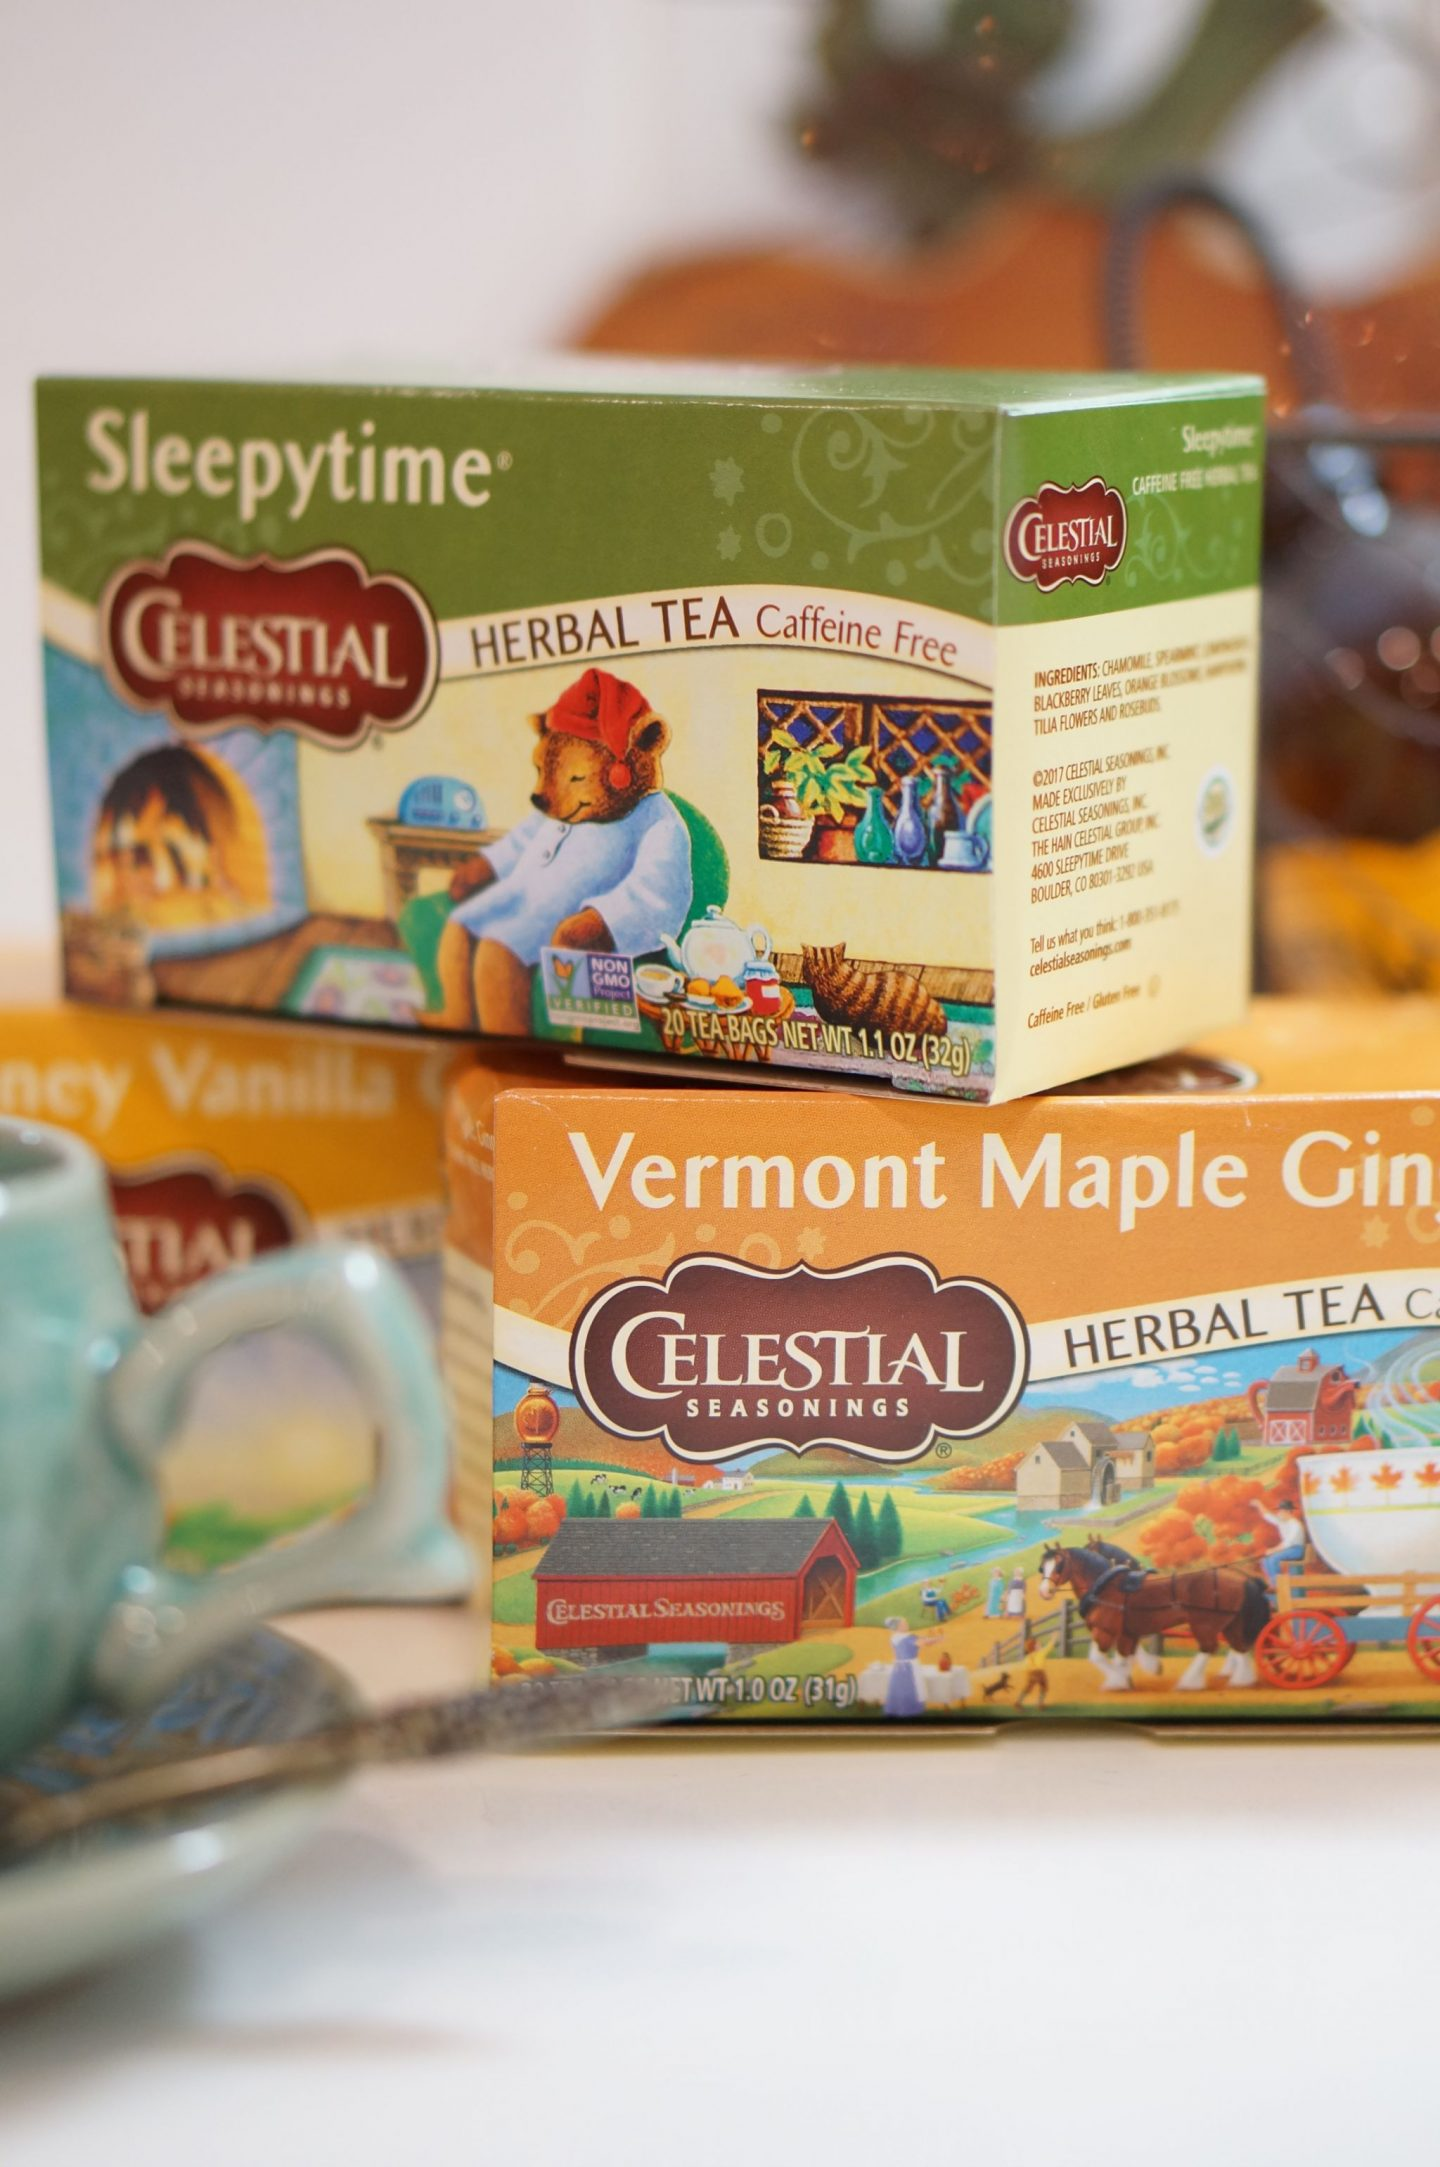 Popular North Carolina blogger Rebecca Lately shares her favorite seasonal flavors from Celestial Seasonings Tea. Clck here to read more about her faves!